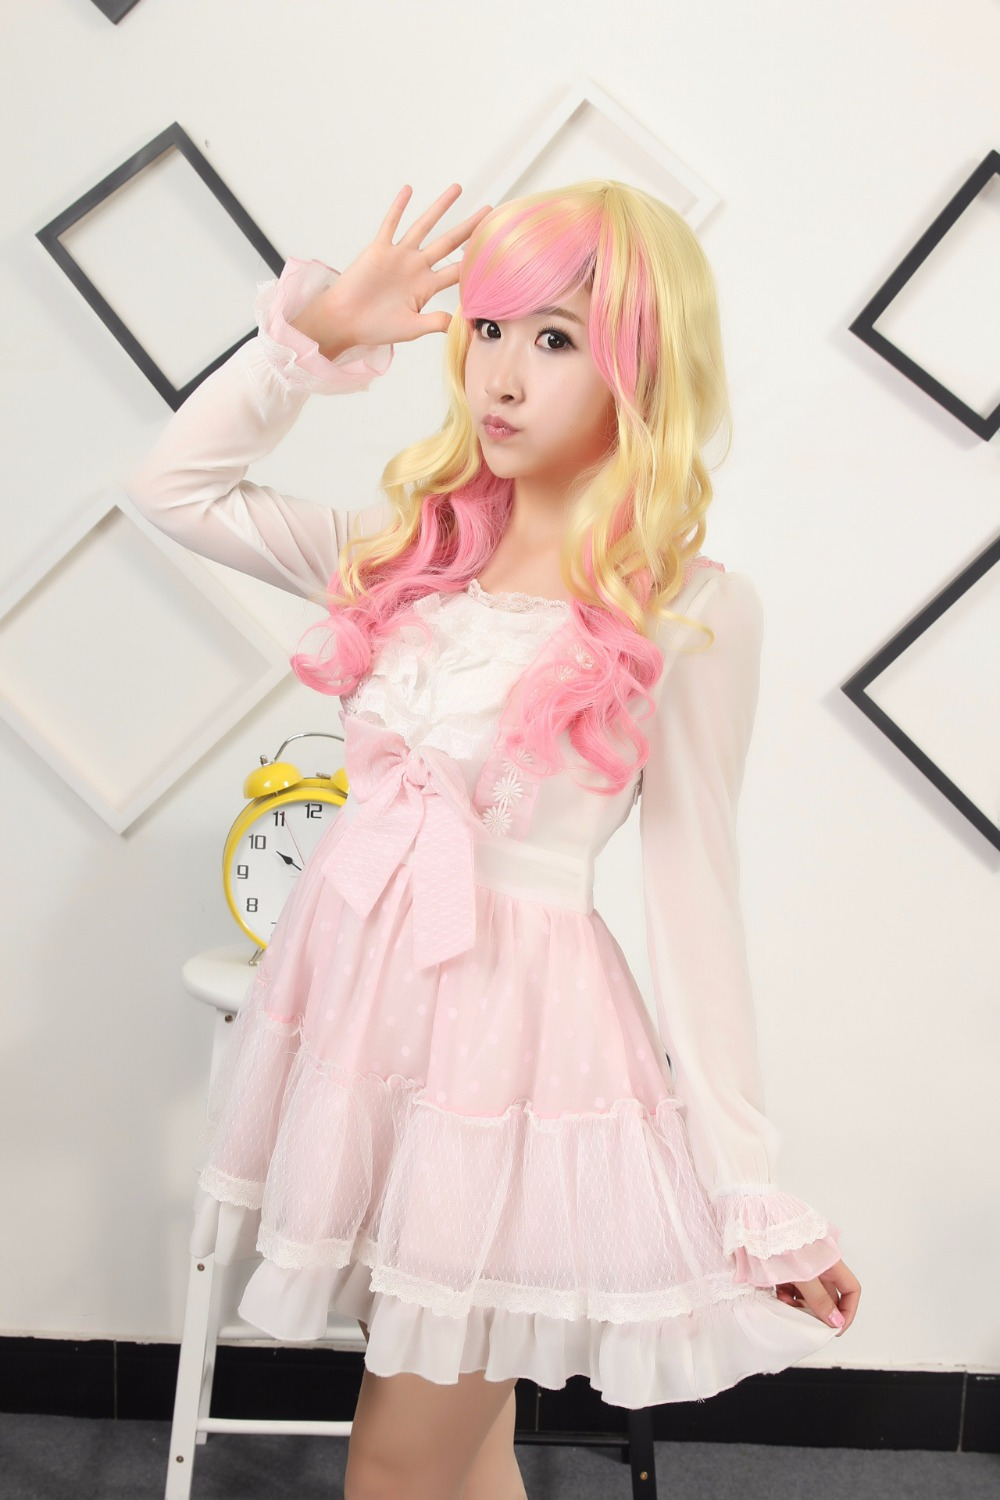 Lovely Long Wavy Curly Anime Wig Light Blonde And Pink Highlights